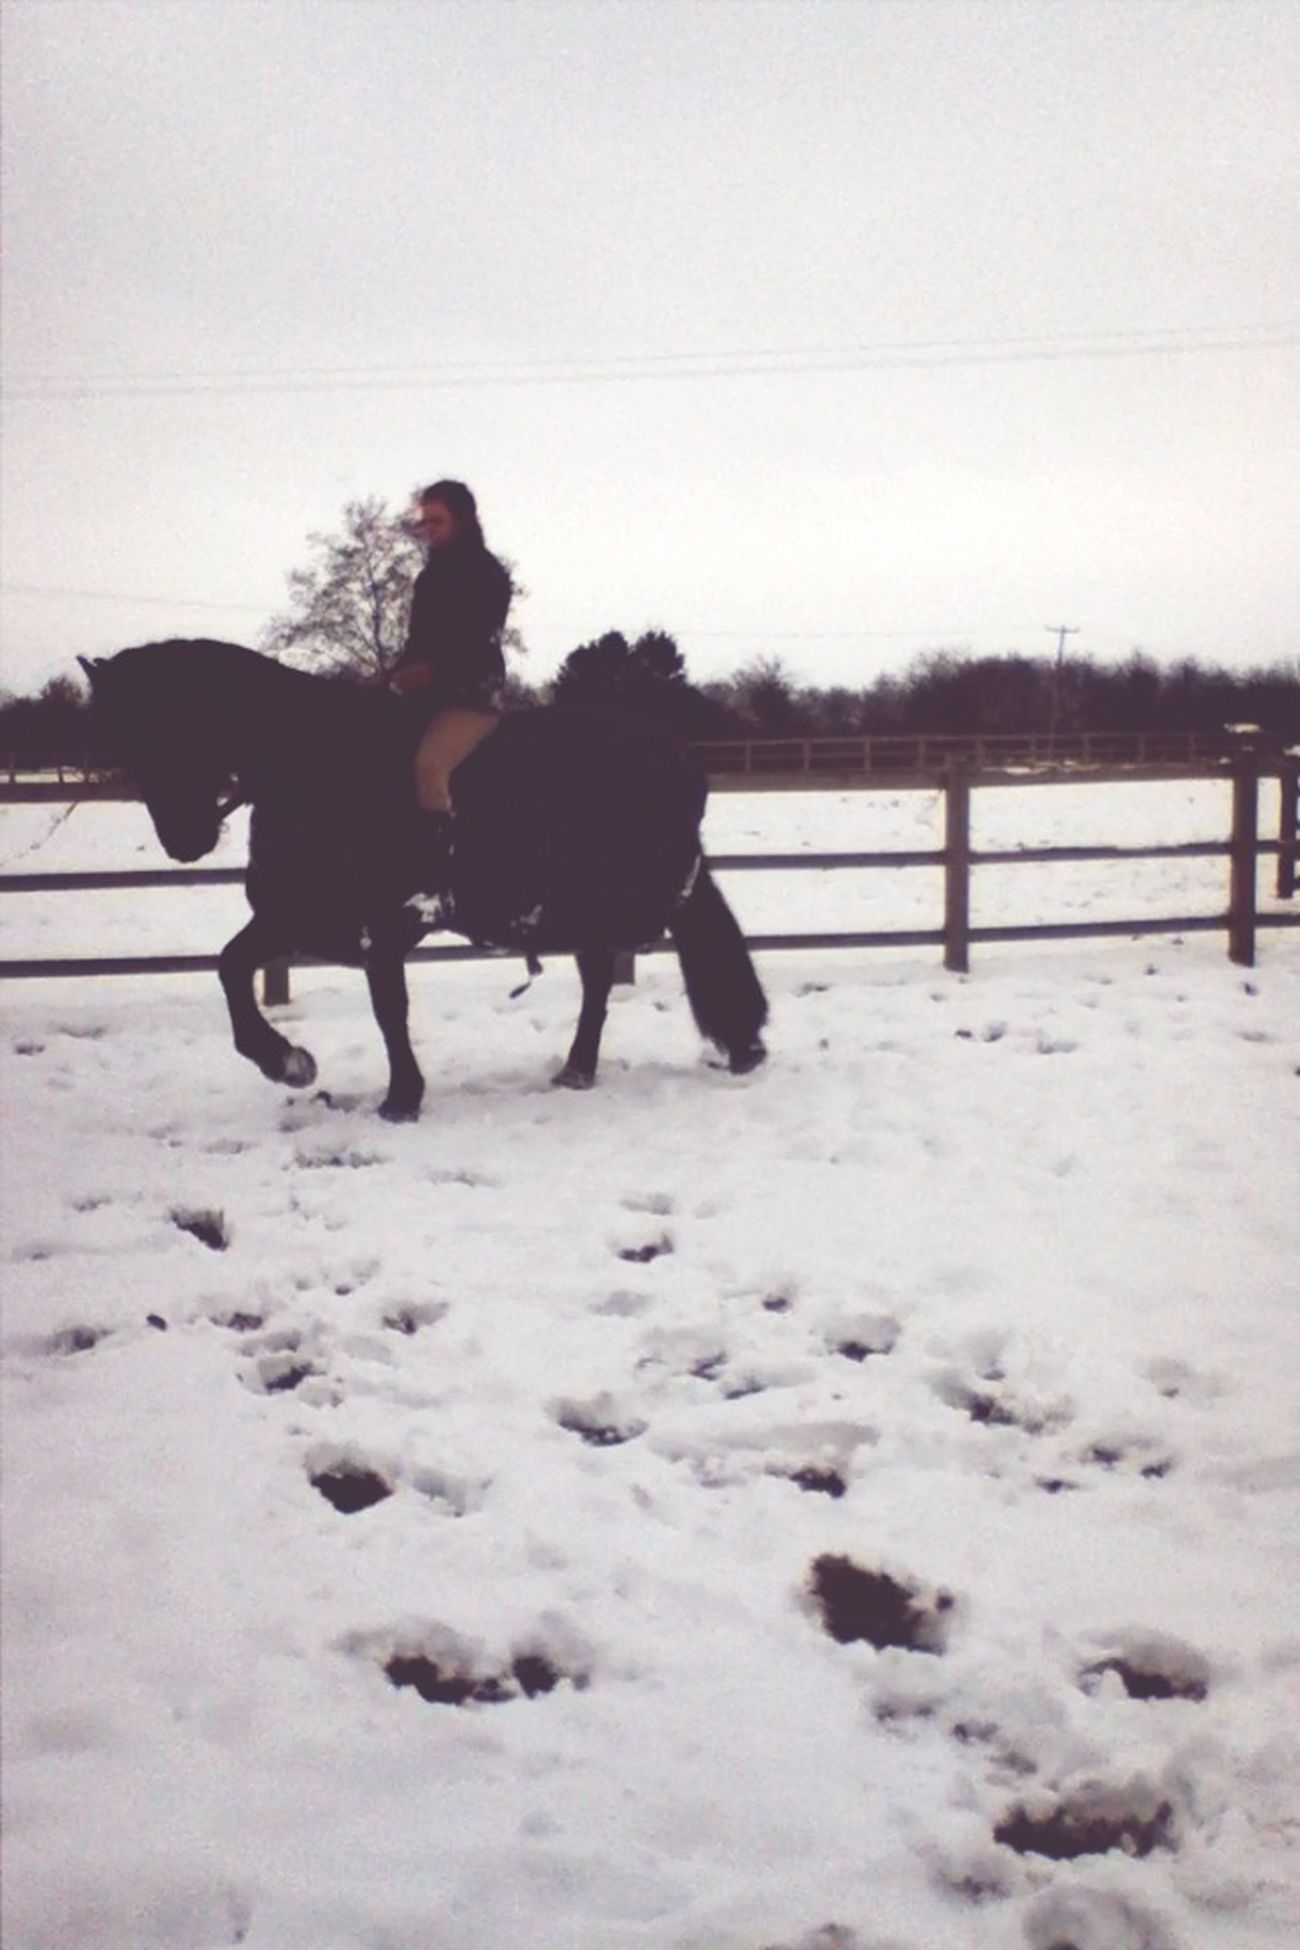 Riding In The Snow